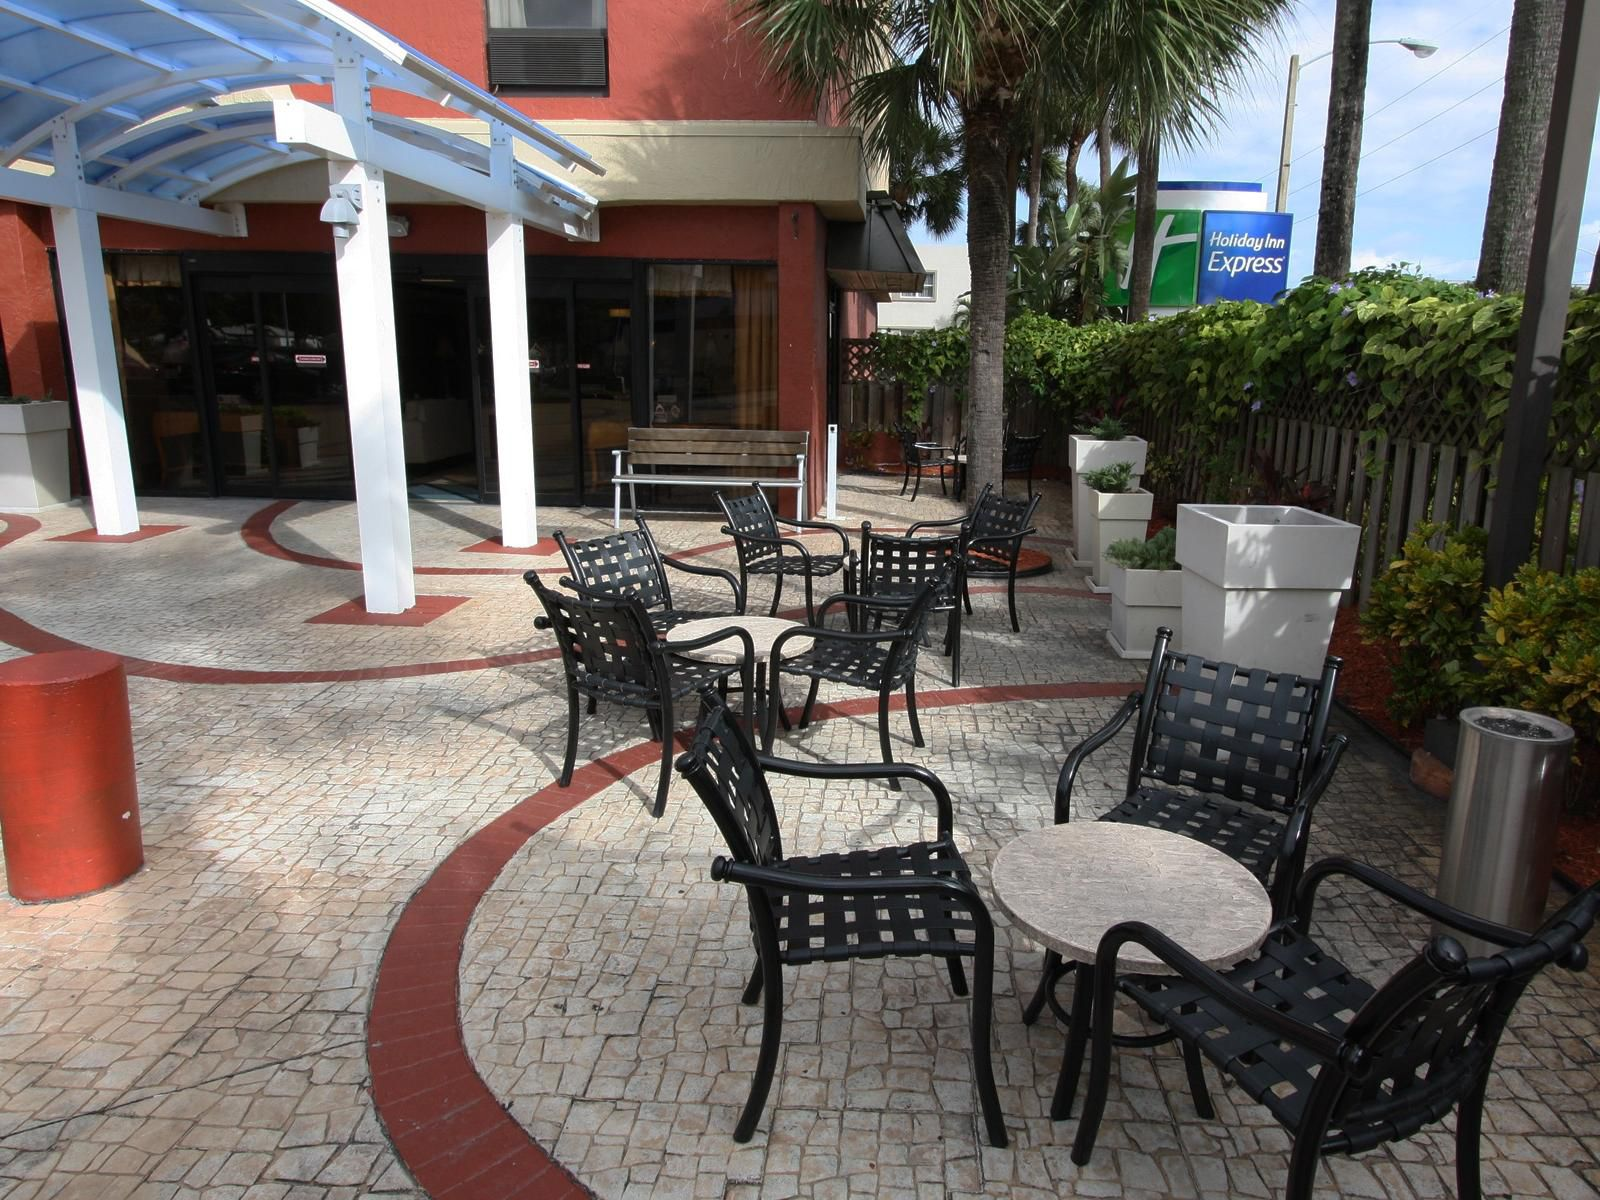 Holiday Inn Express Miami Airport Patio Outdoor Seating Area